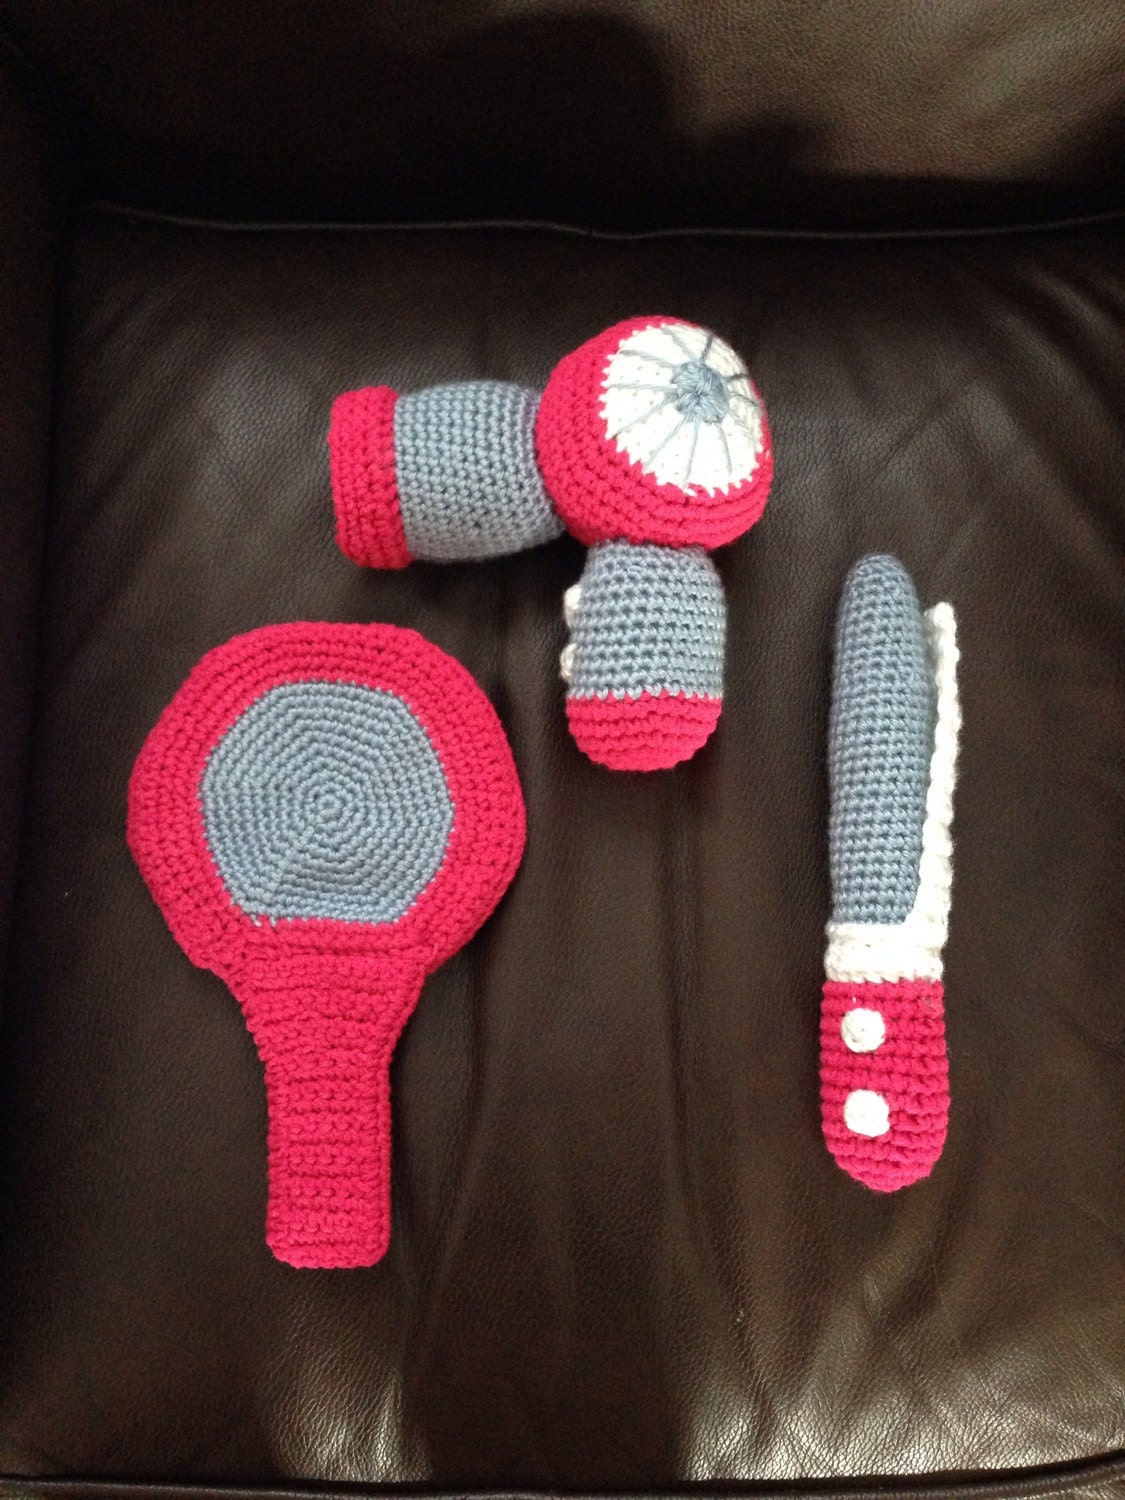 Toys For Hair : Crochet hair styling toy childrens salon set kids